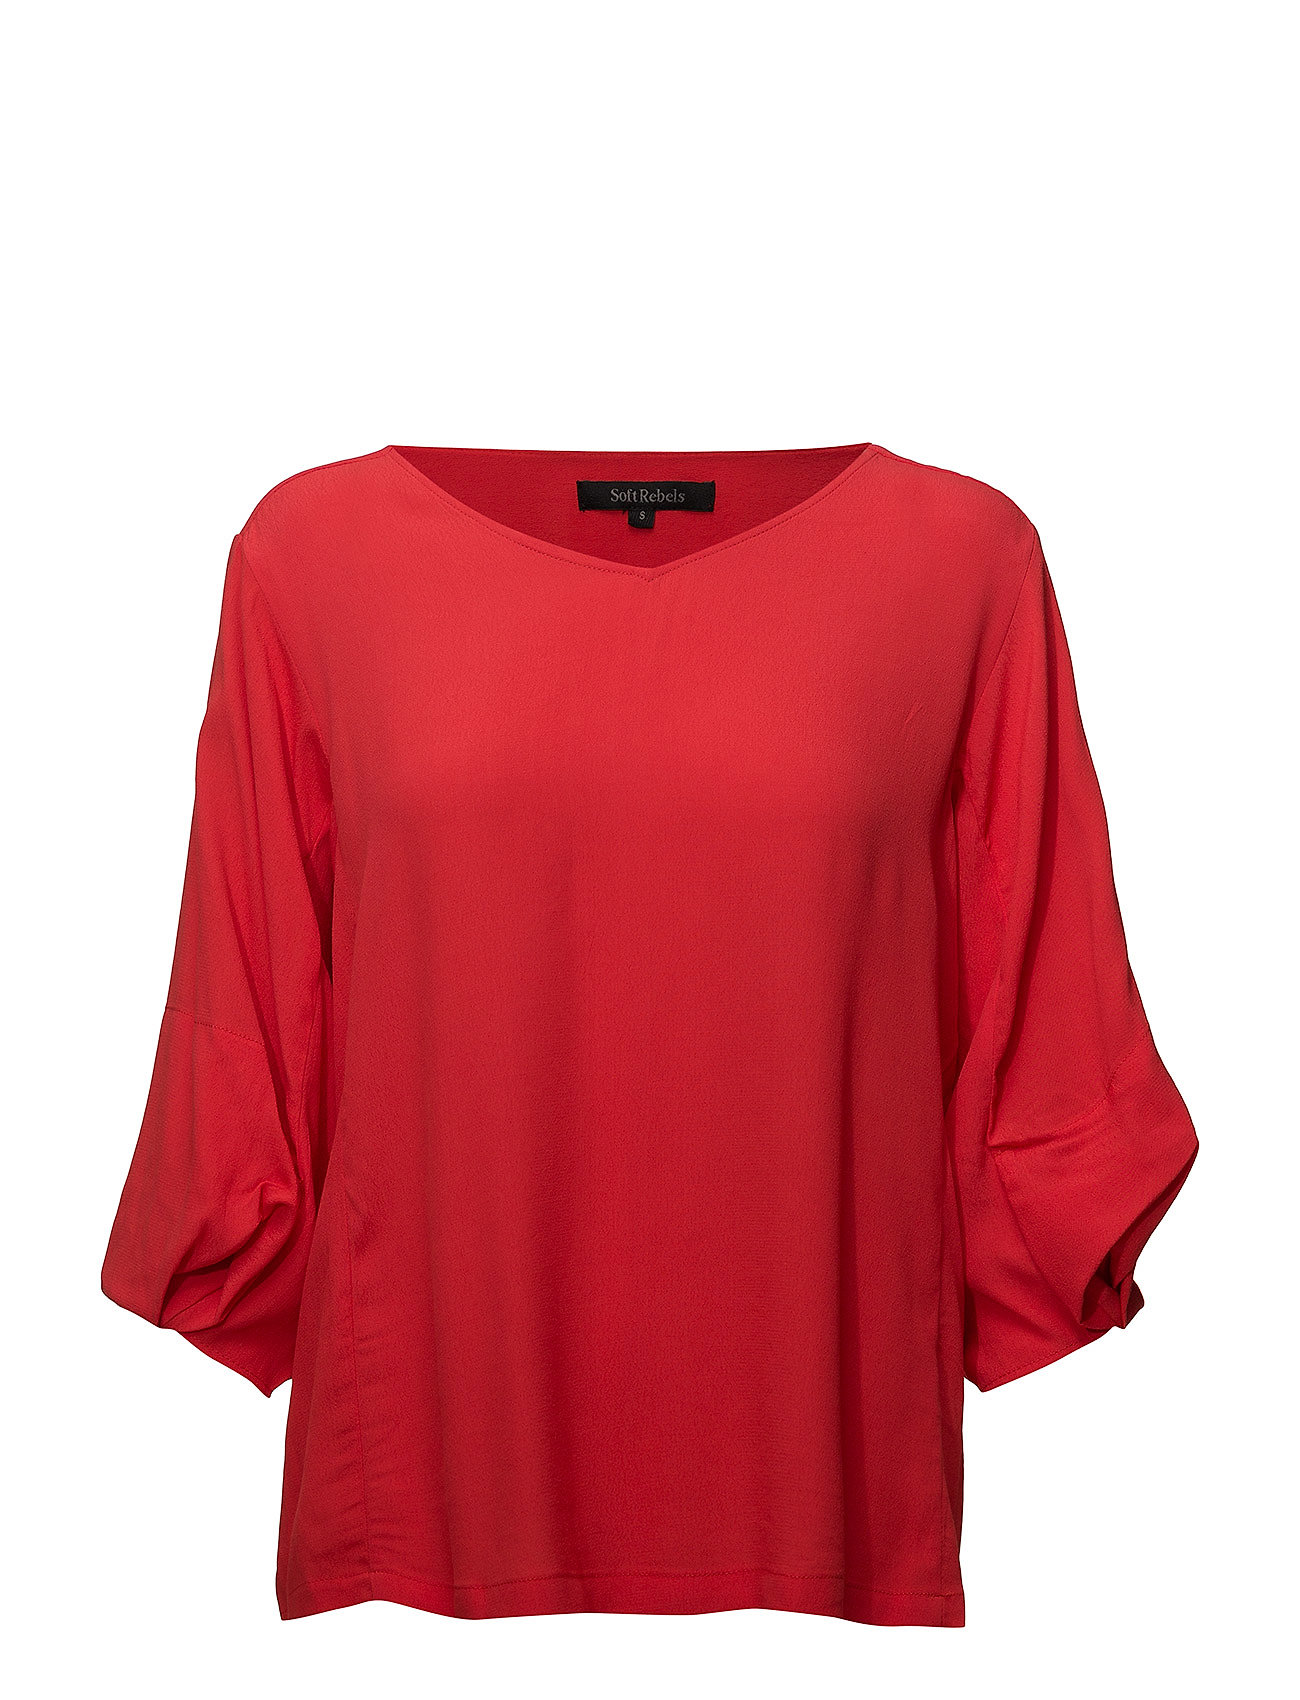 Soft Rebels Keep Balloon Sleeve Blouse - CRIMSON